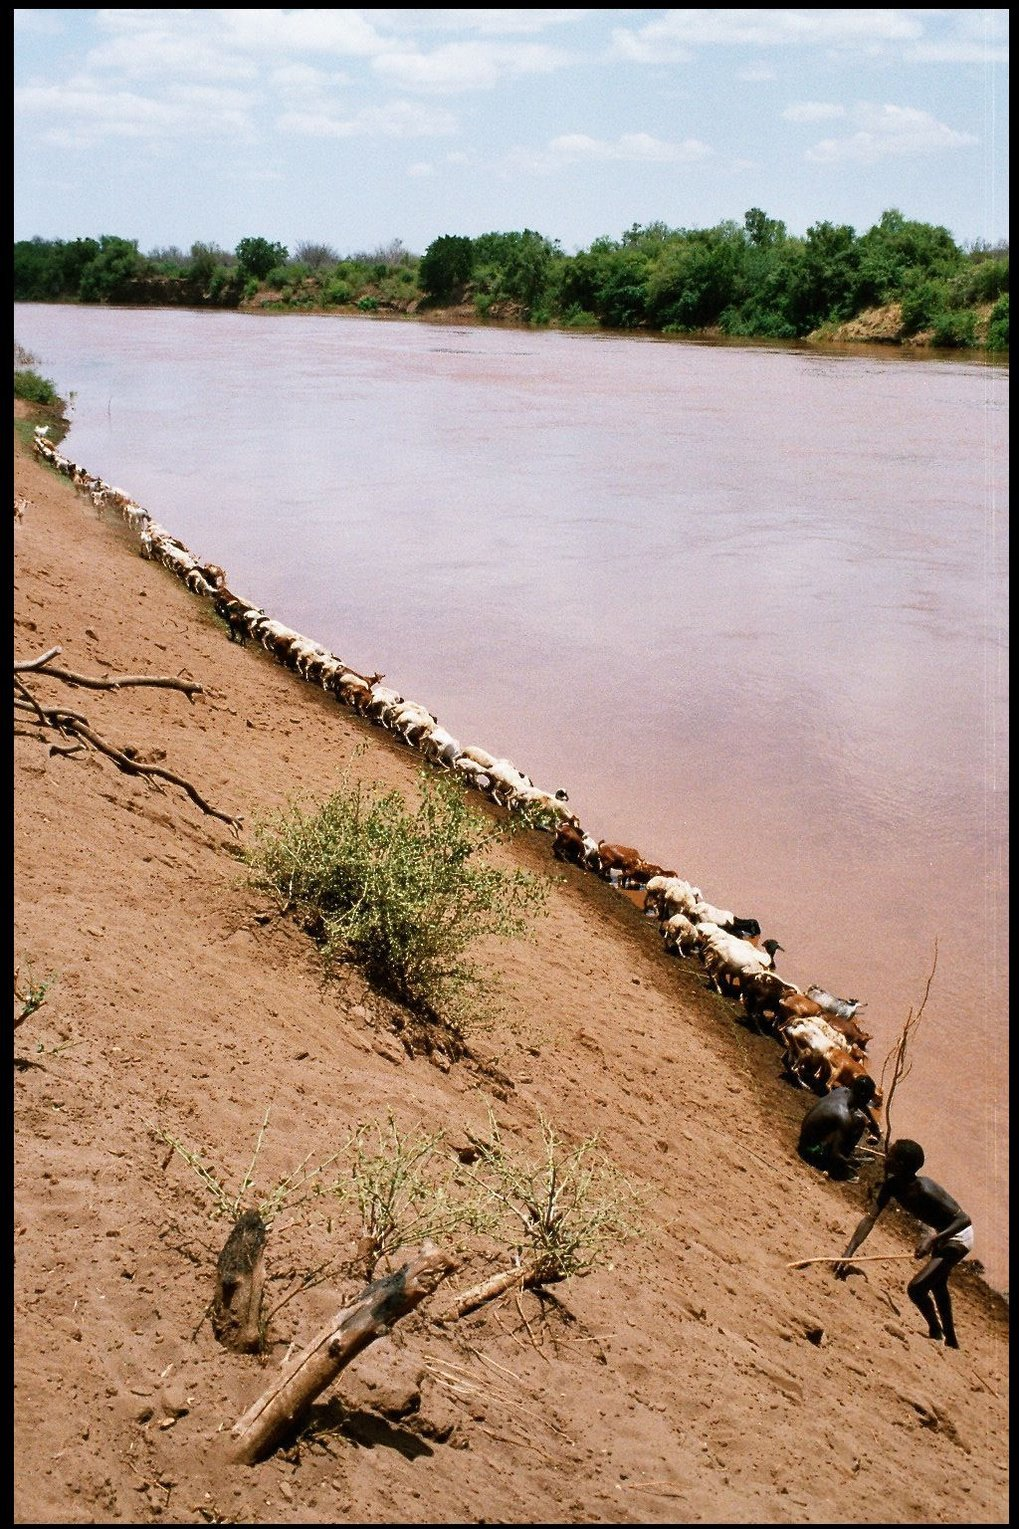 The goats line up to drink from the Omo River at Gorrente, Kara, Ethiopia, 2004